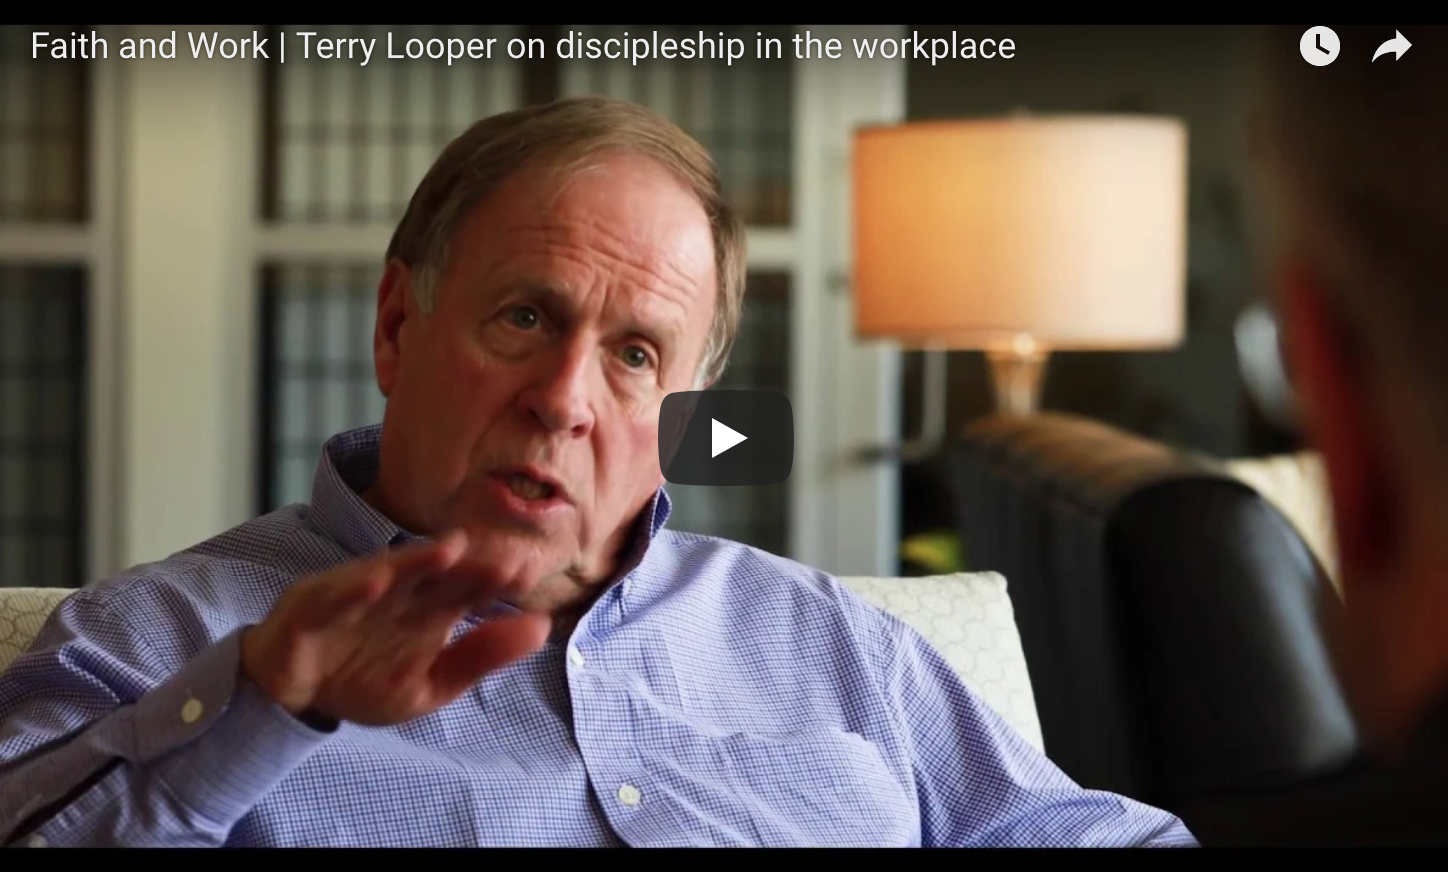 Terry Looper on Discipleship in the Workplace